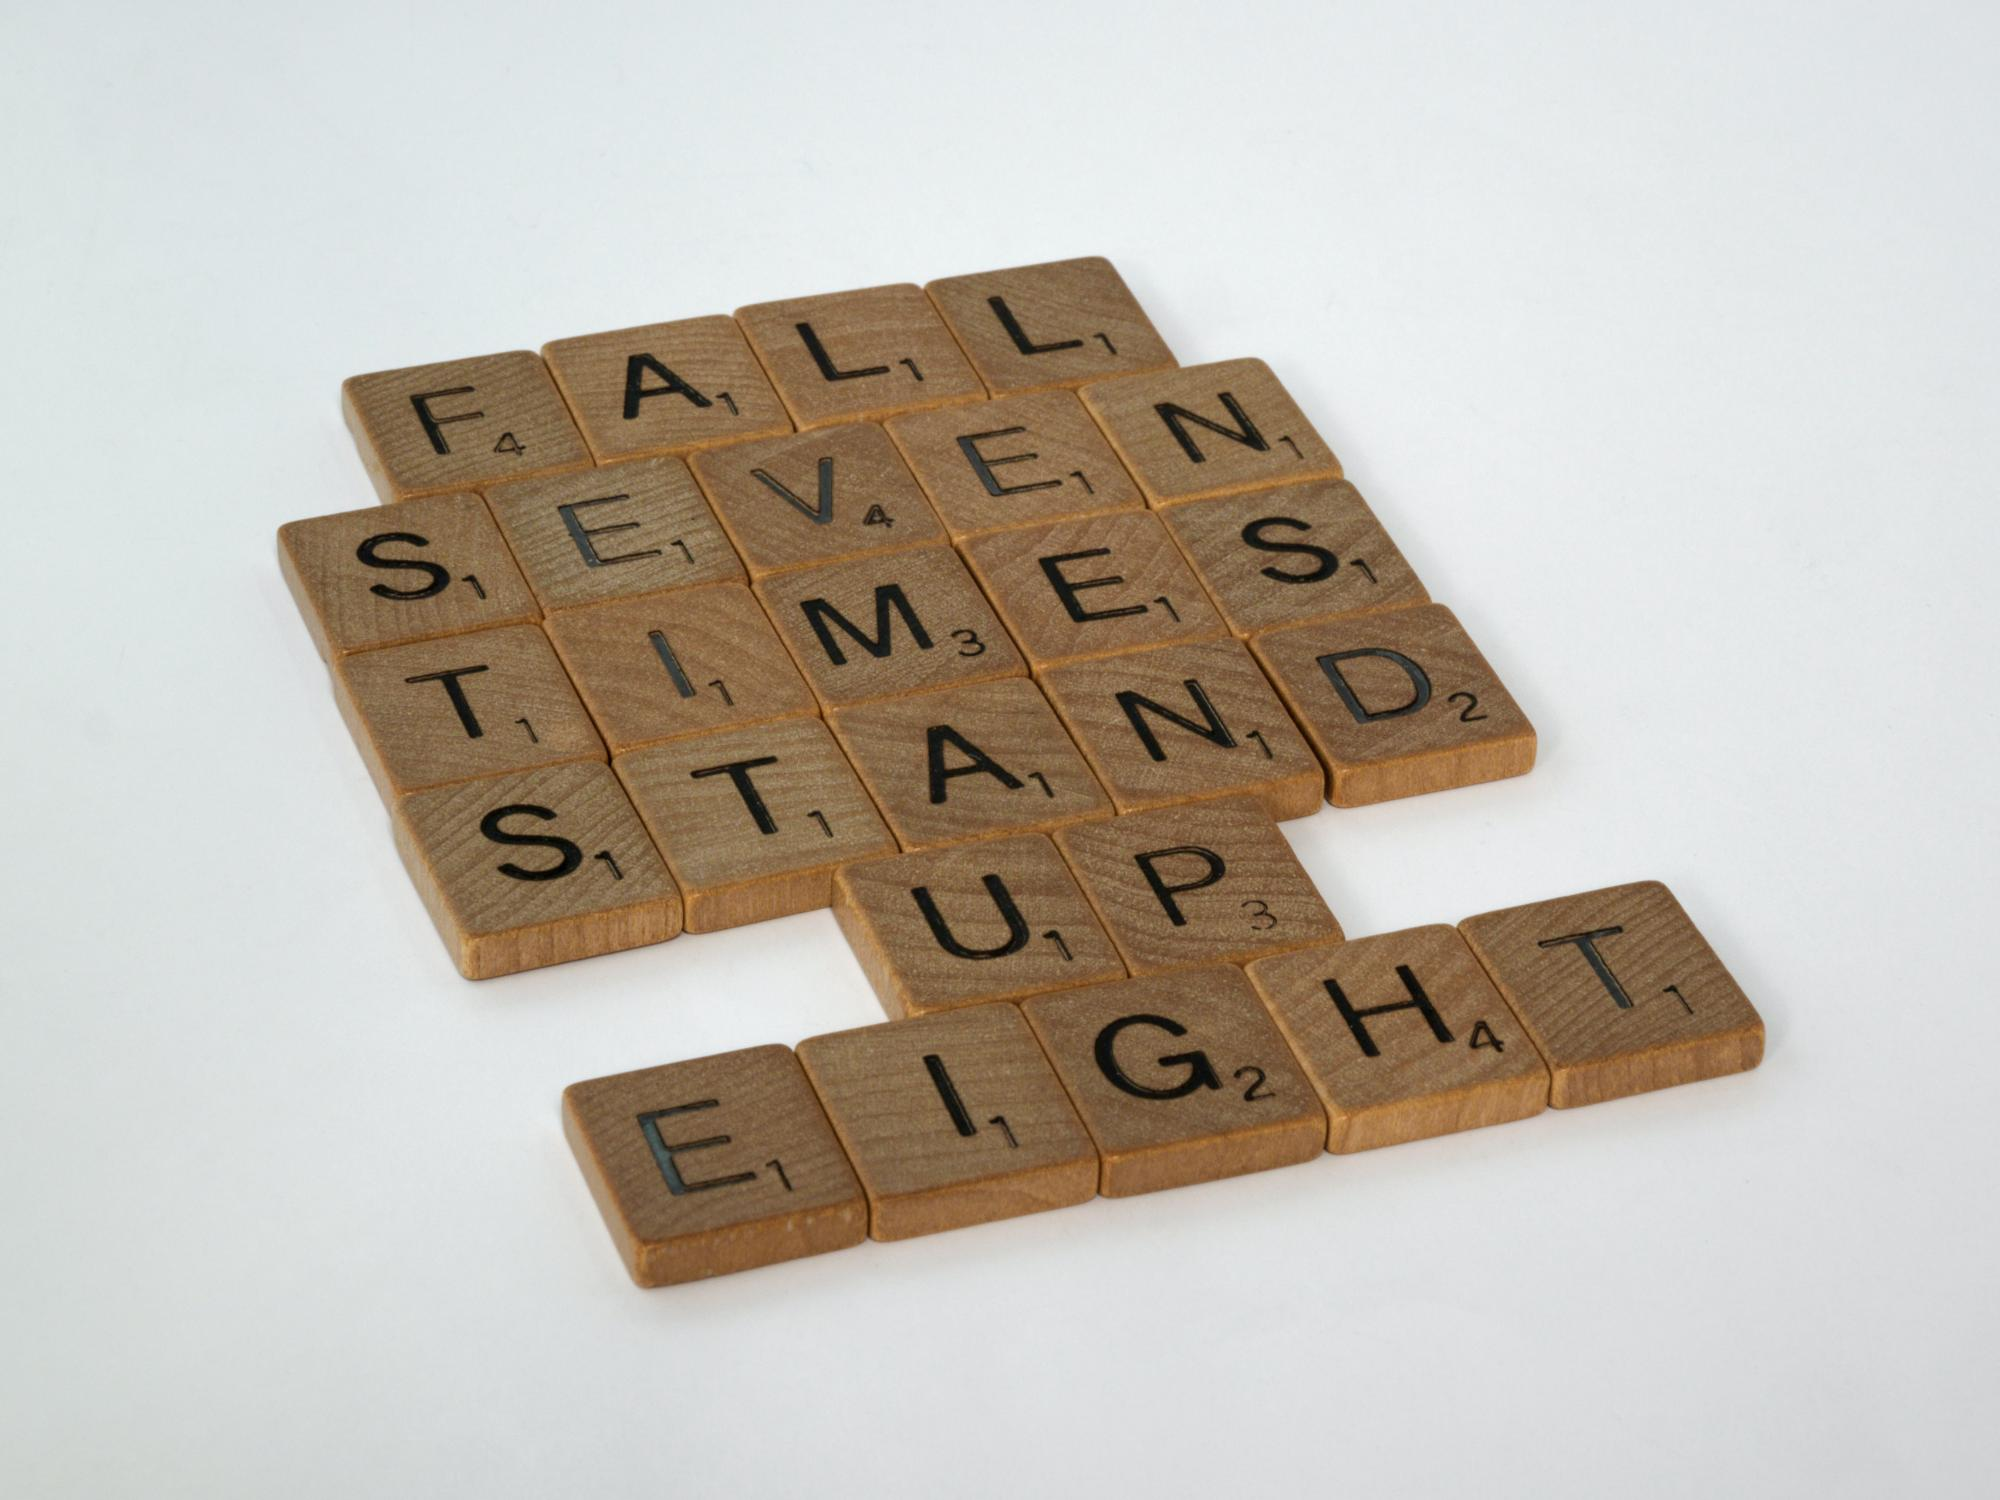 scrabble, scrabble pieces, lettering, letters, wood, scrabble tiles, words, quote, fall seven times stand up eight, don't give up, persevere, never give up, keep going, relentless,  by Brett Jordan